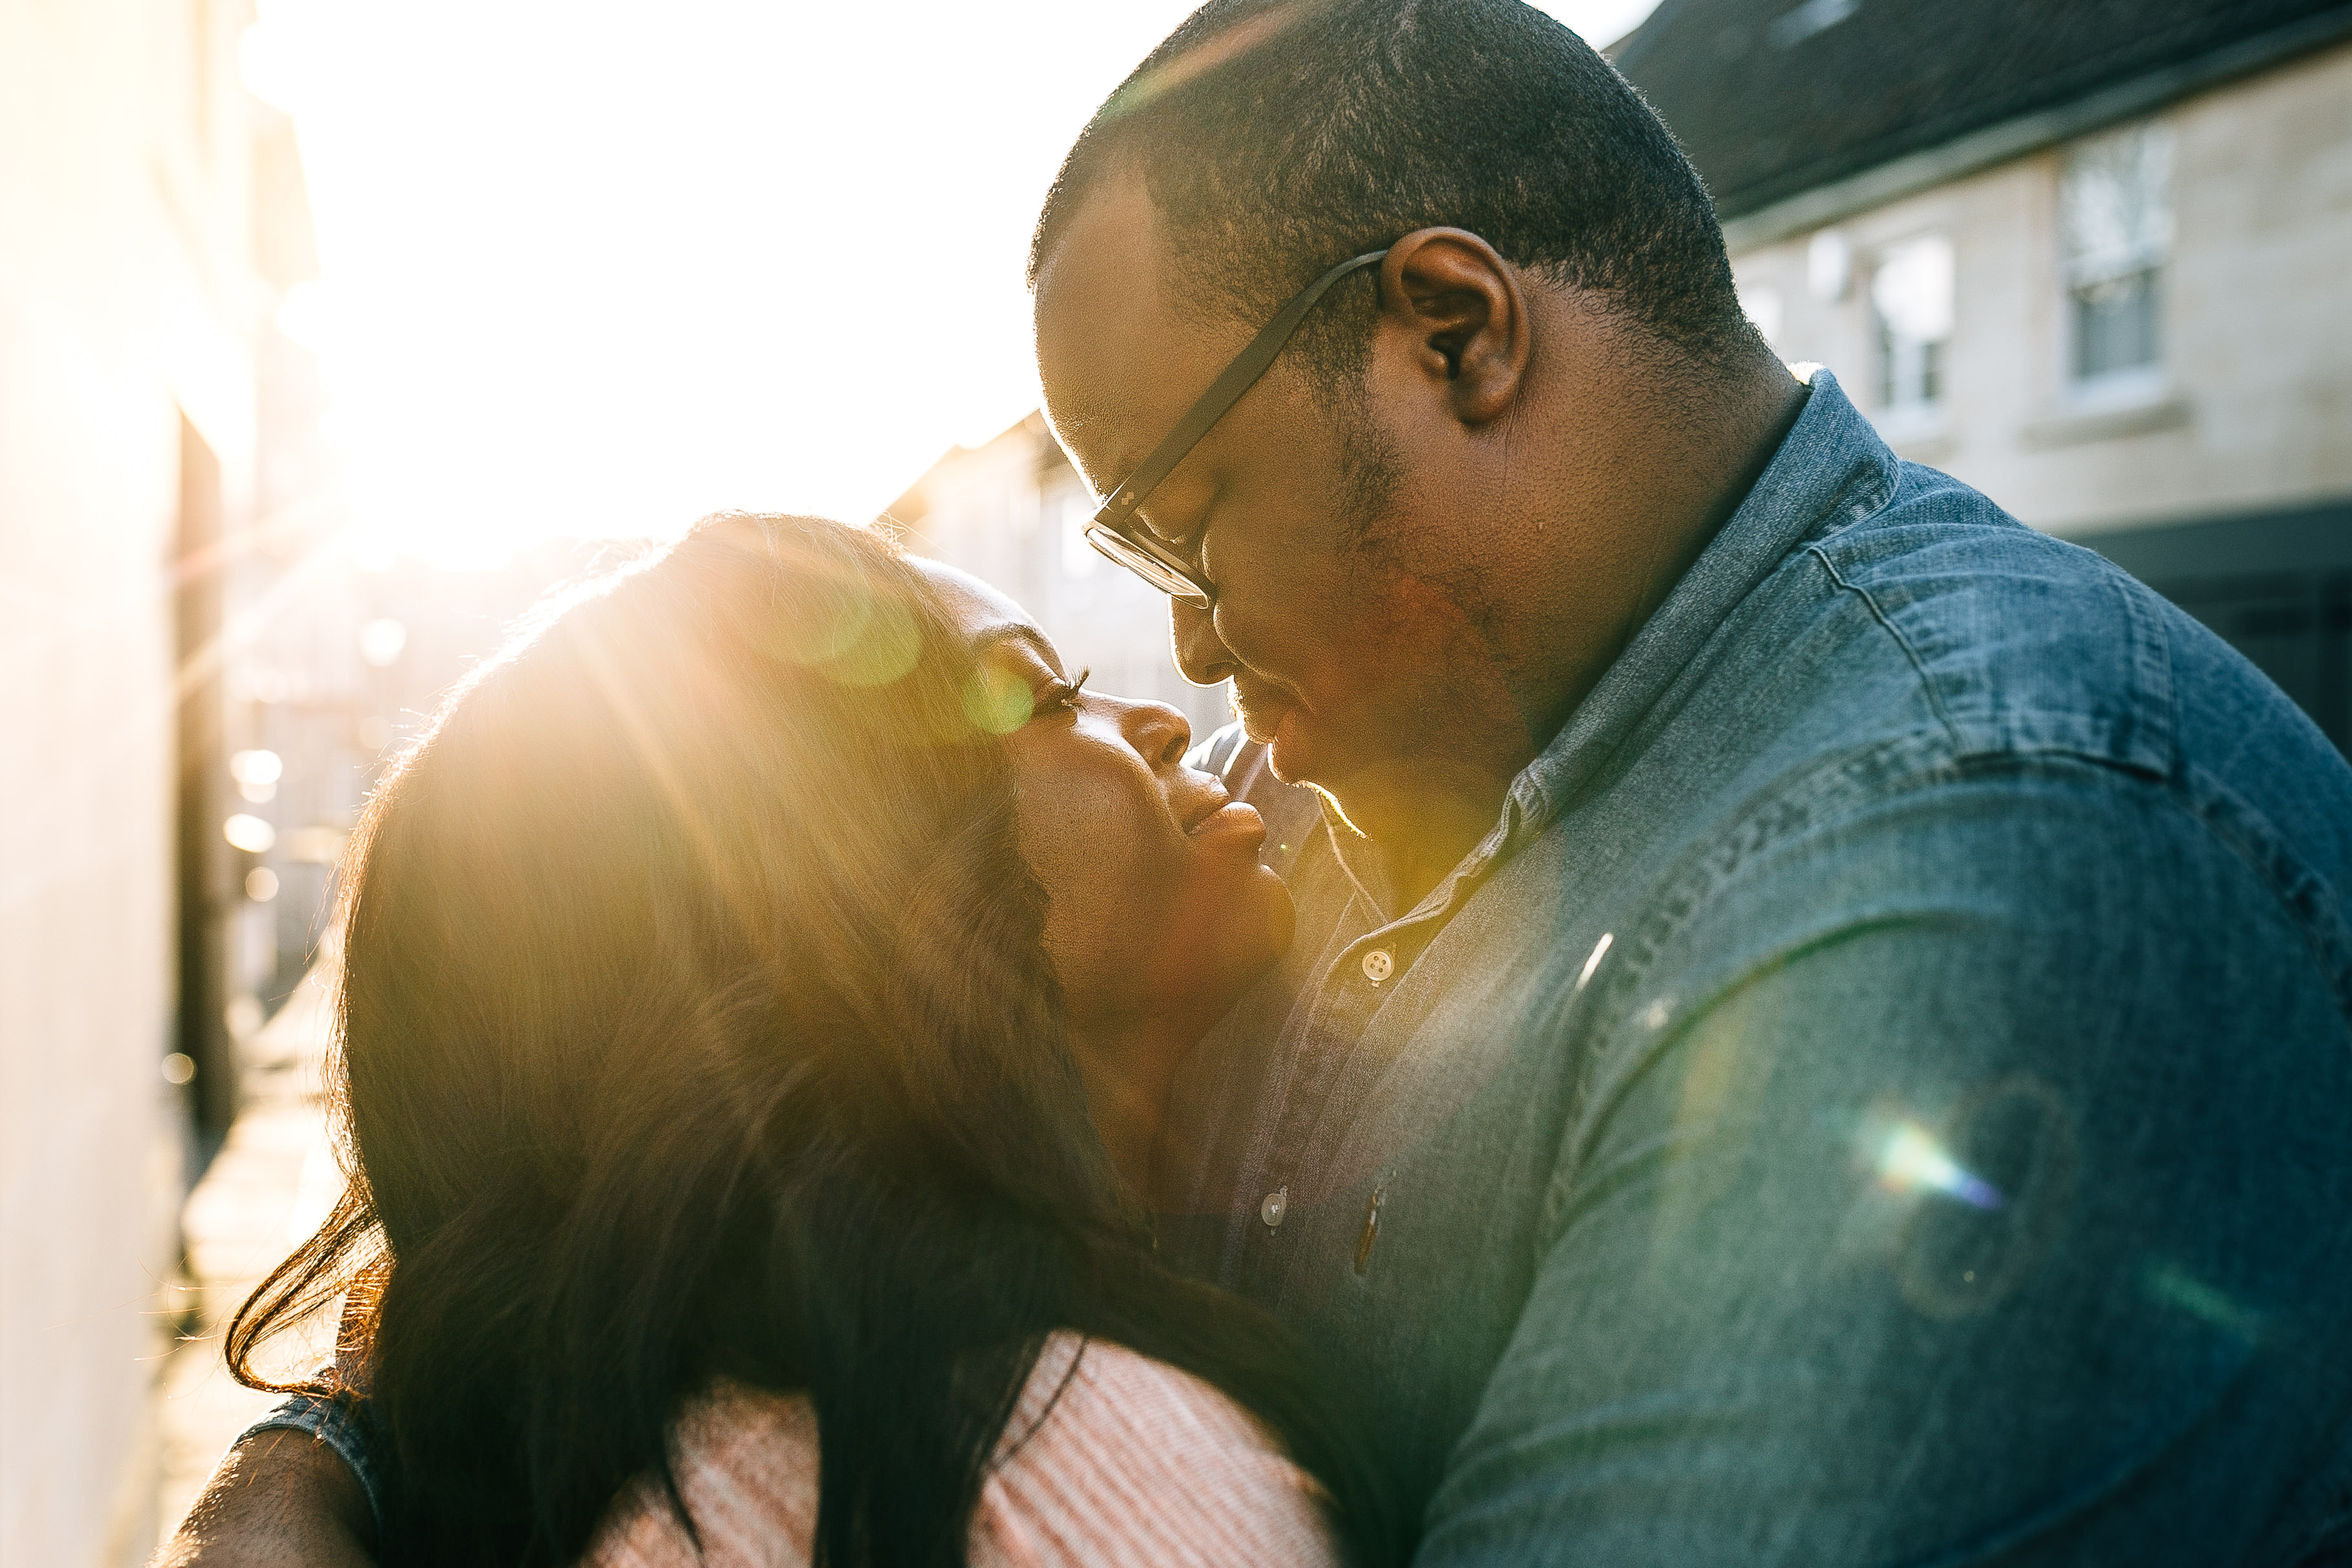 sunset engagement shoot by bath somersert wedding photographer in uk